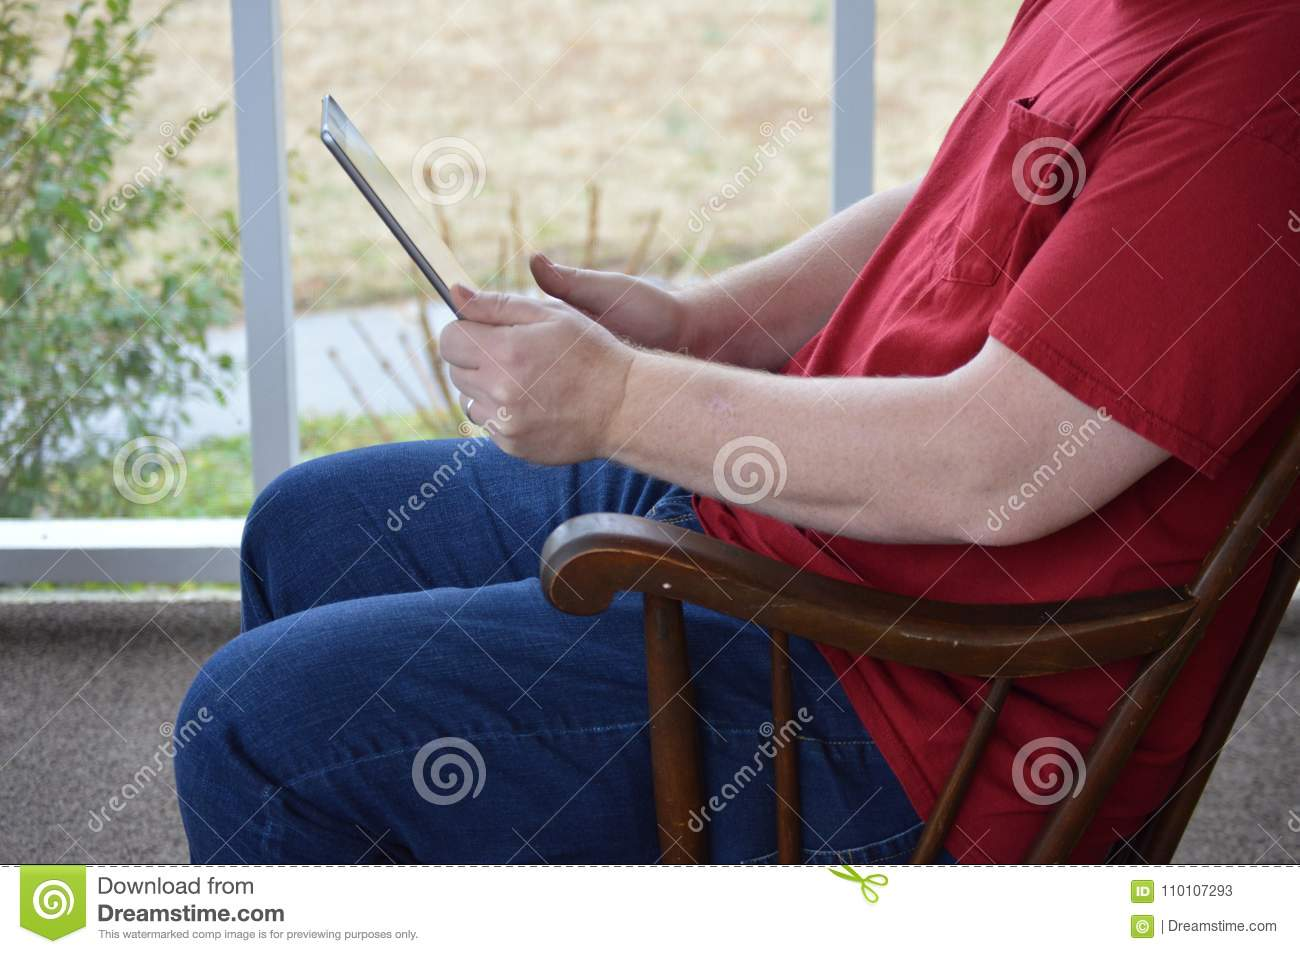 Tremendous Using A Tablet In A Rocking Chair 5 Stock Image Image Of Gmtry Best Dining Table And Chair Ideas Images Gmtryco